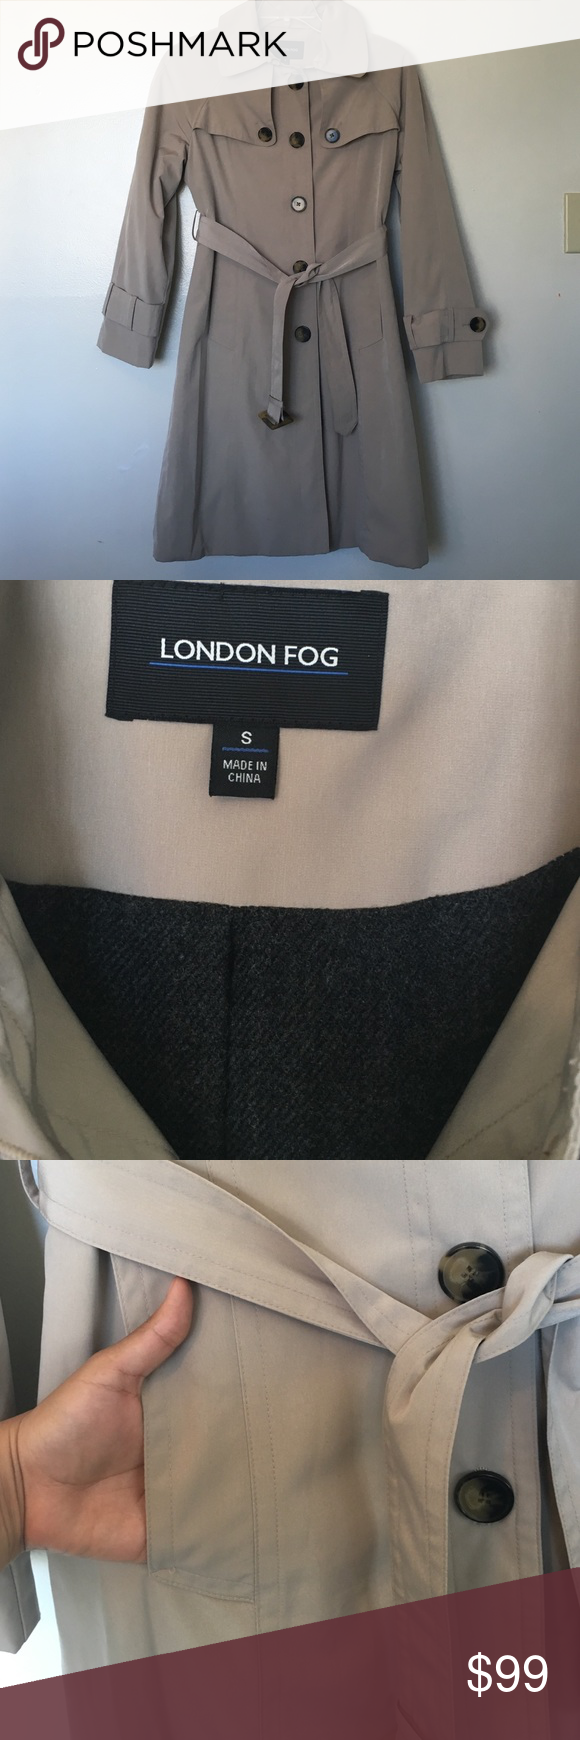 London Fog Coat Size Small Excellent condition  No model No trade  London Fog Jackets & Coats Trench Coats